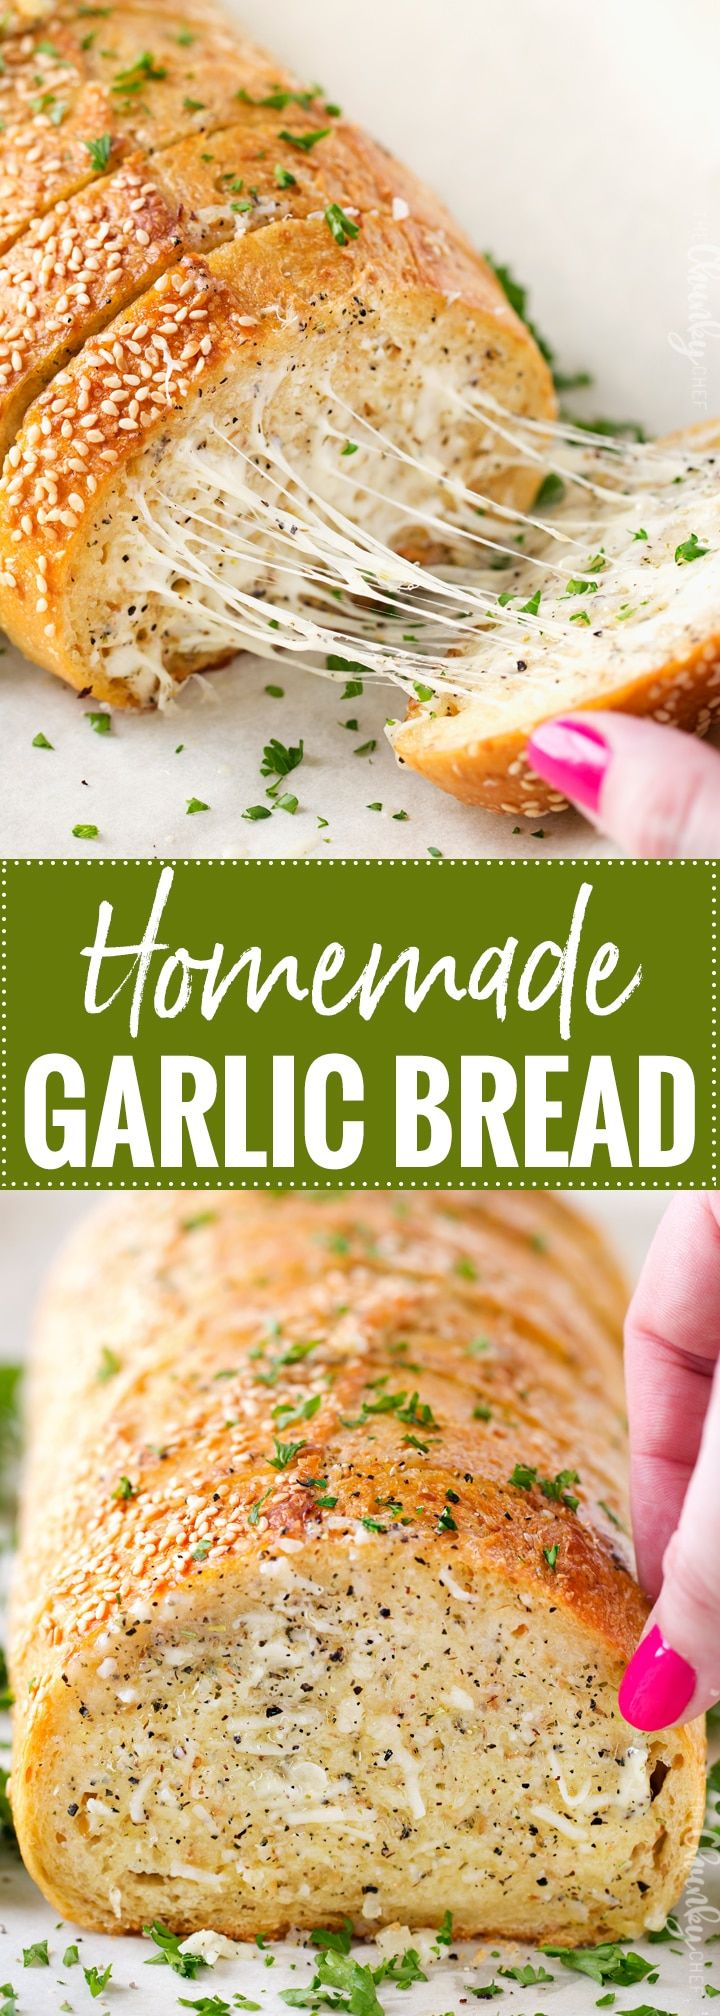 Homemade Garlic Bread | Who knew homemade garlic bread could be so easy!  Start off with your favorite bakery bread, add a mouthwatering garlic parmesan and herb spread, extra cheese if you want, and bake until warm, gooey, buttery and toasty! | http://thechunkychef.com AD  @mtnroseherbs